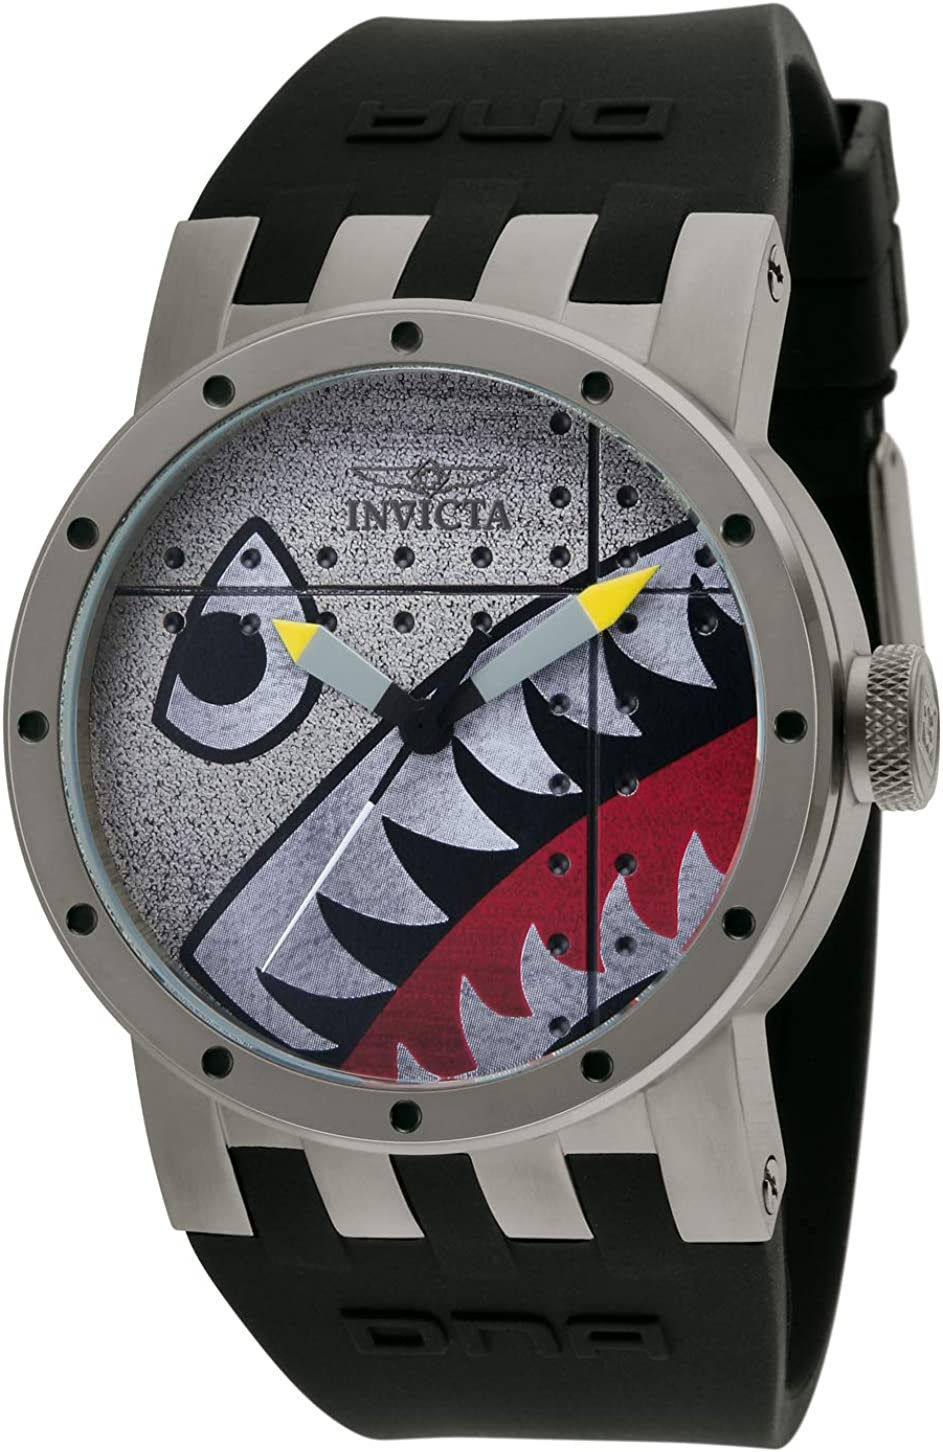 Invicta Men's 11651 DNA Bomber Brushed Black and Grey Dial Black Silicone Watch